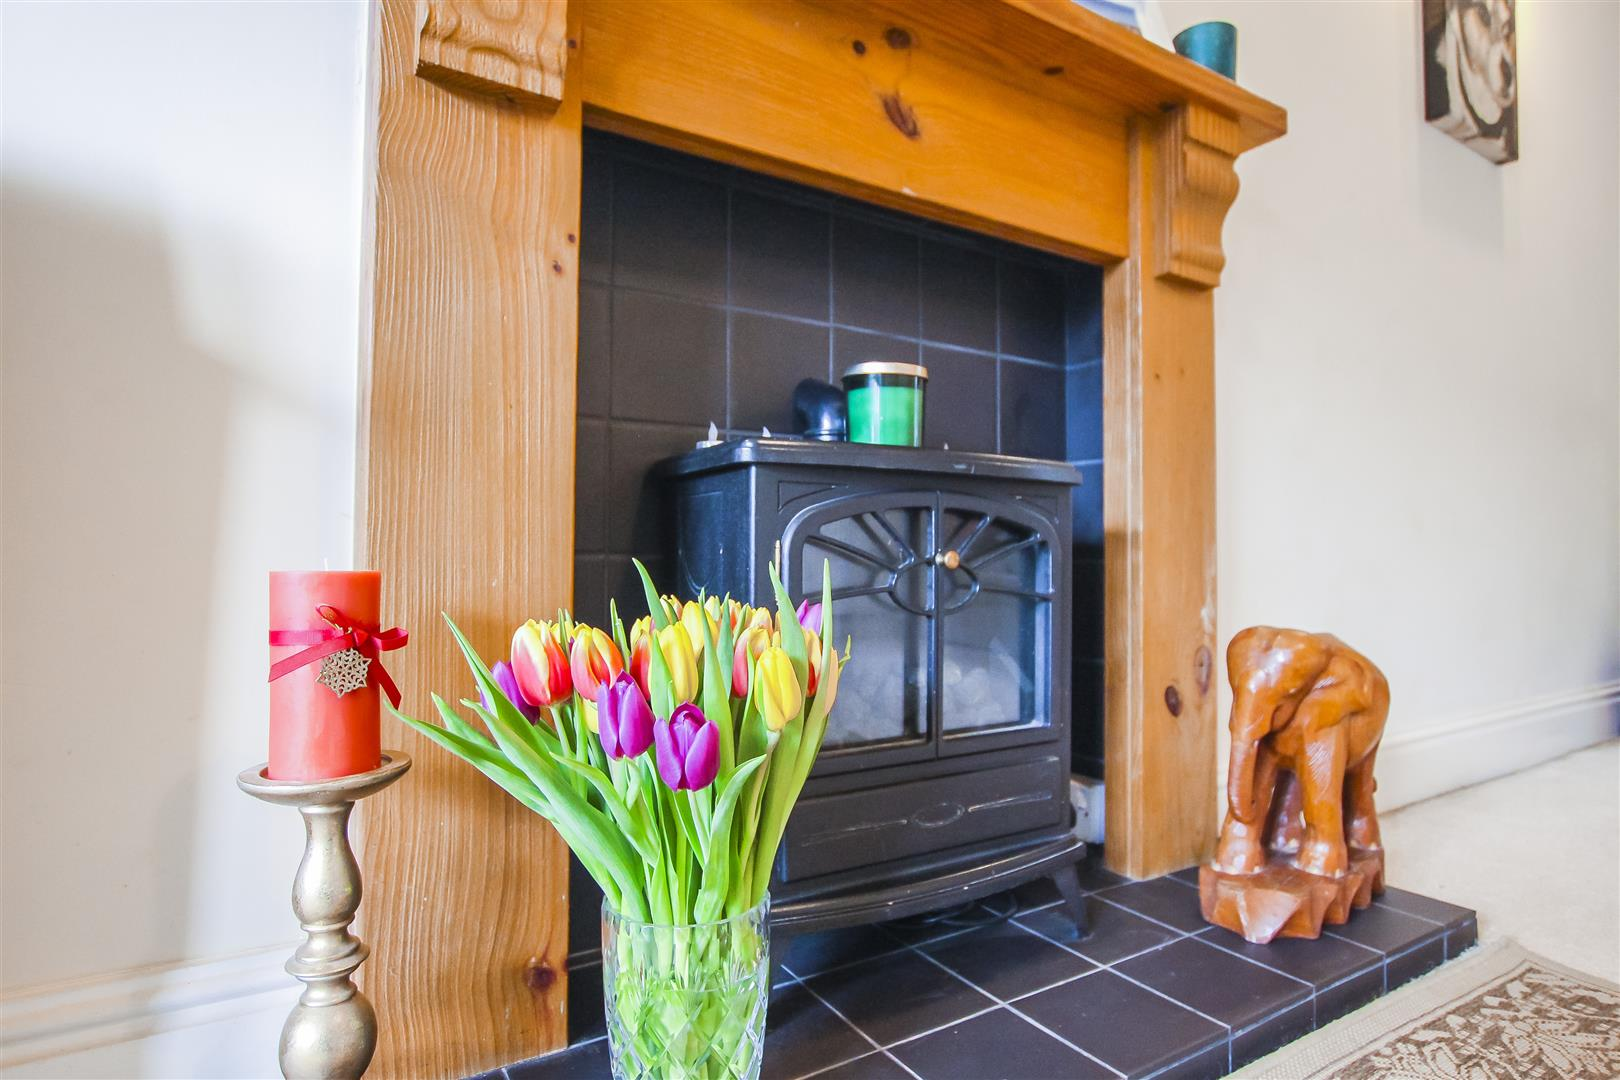 4 Bedroom Farmhouse For Sale - Image 26